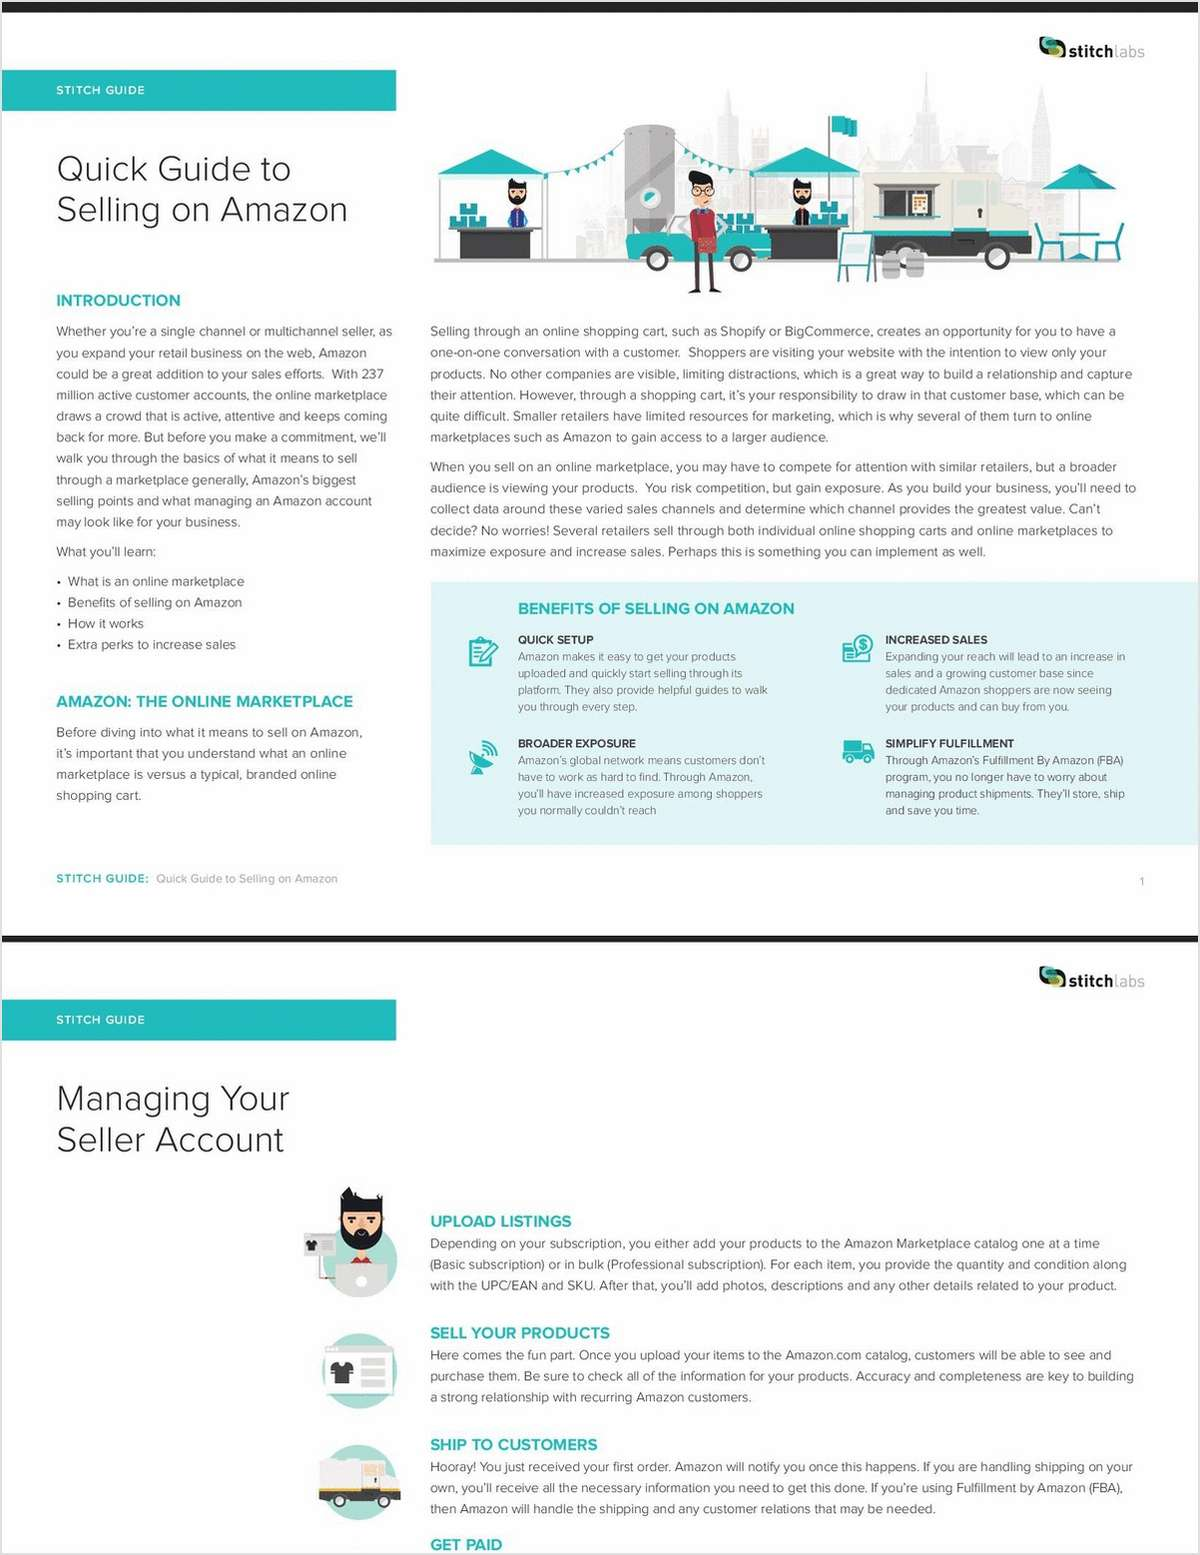 Quick Guide to Selling on Amazon